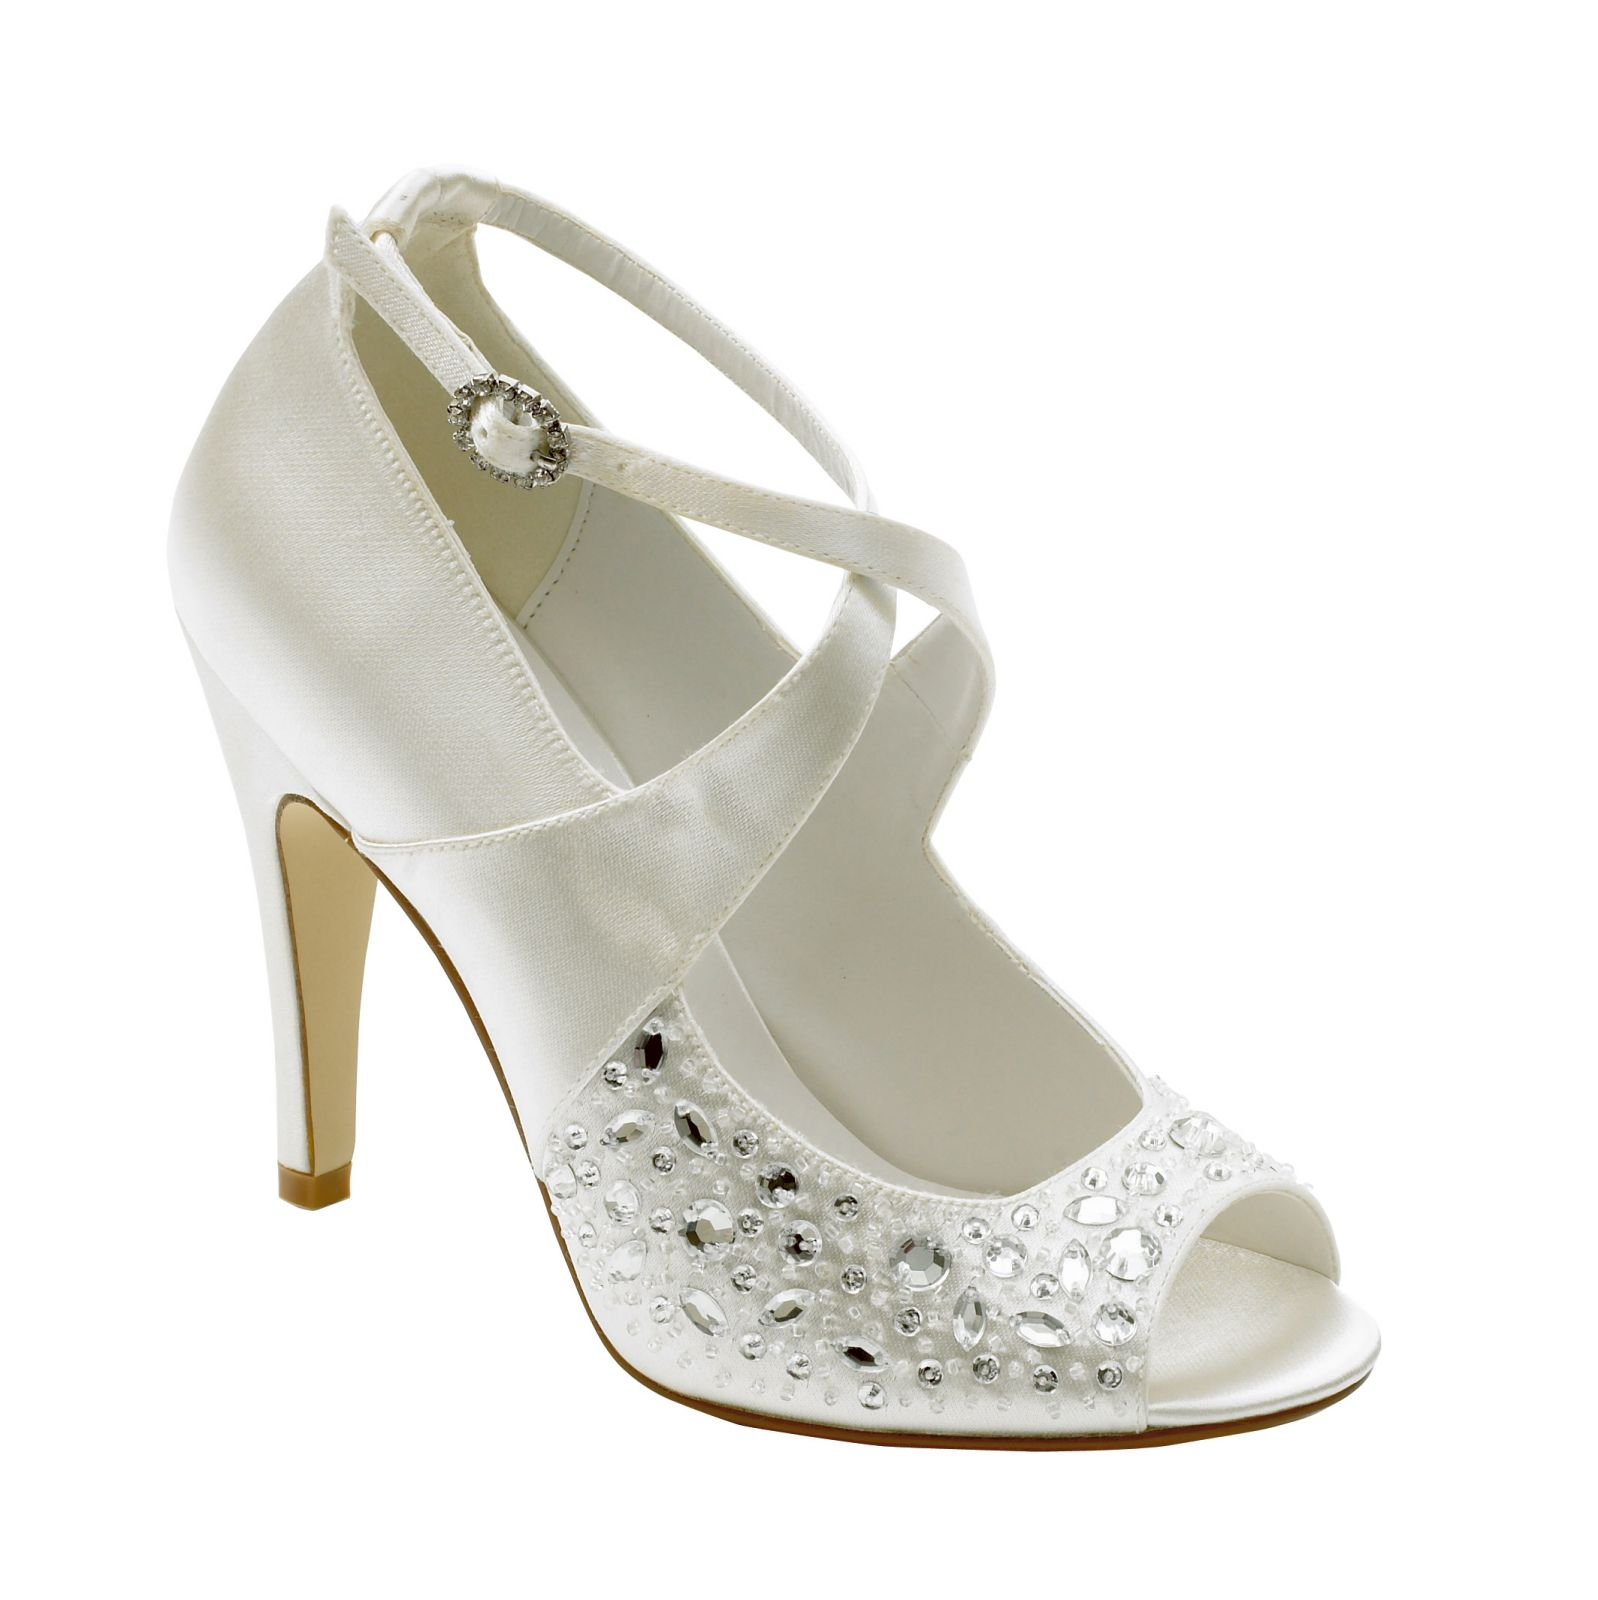 Based on Canvey Island Es Wedding Shoes Direct offer the